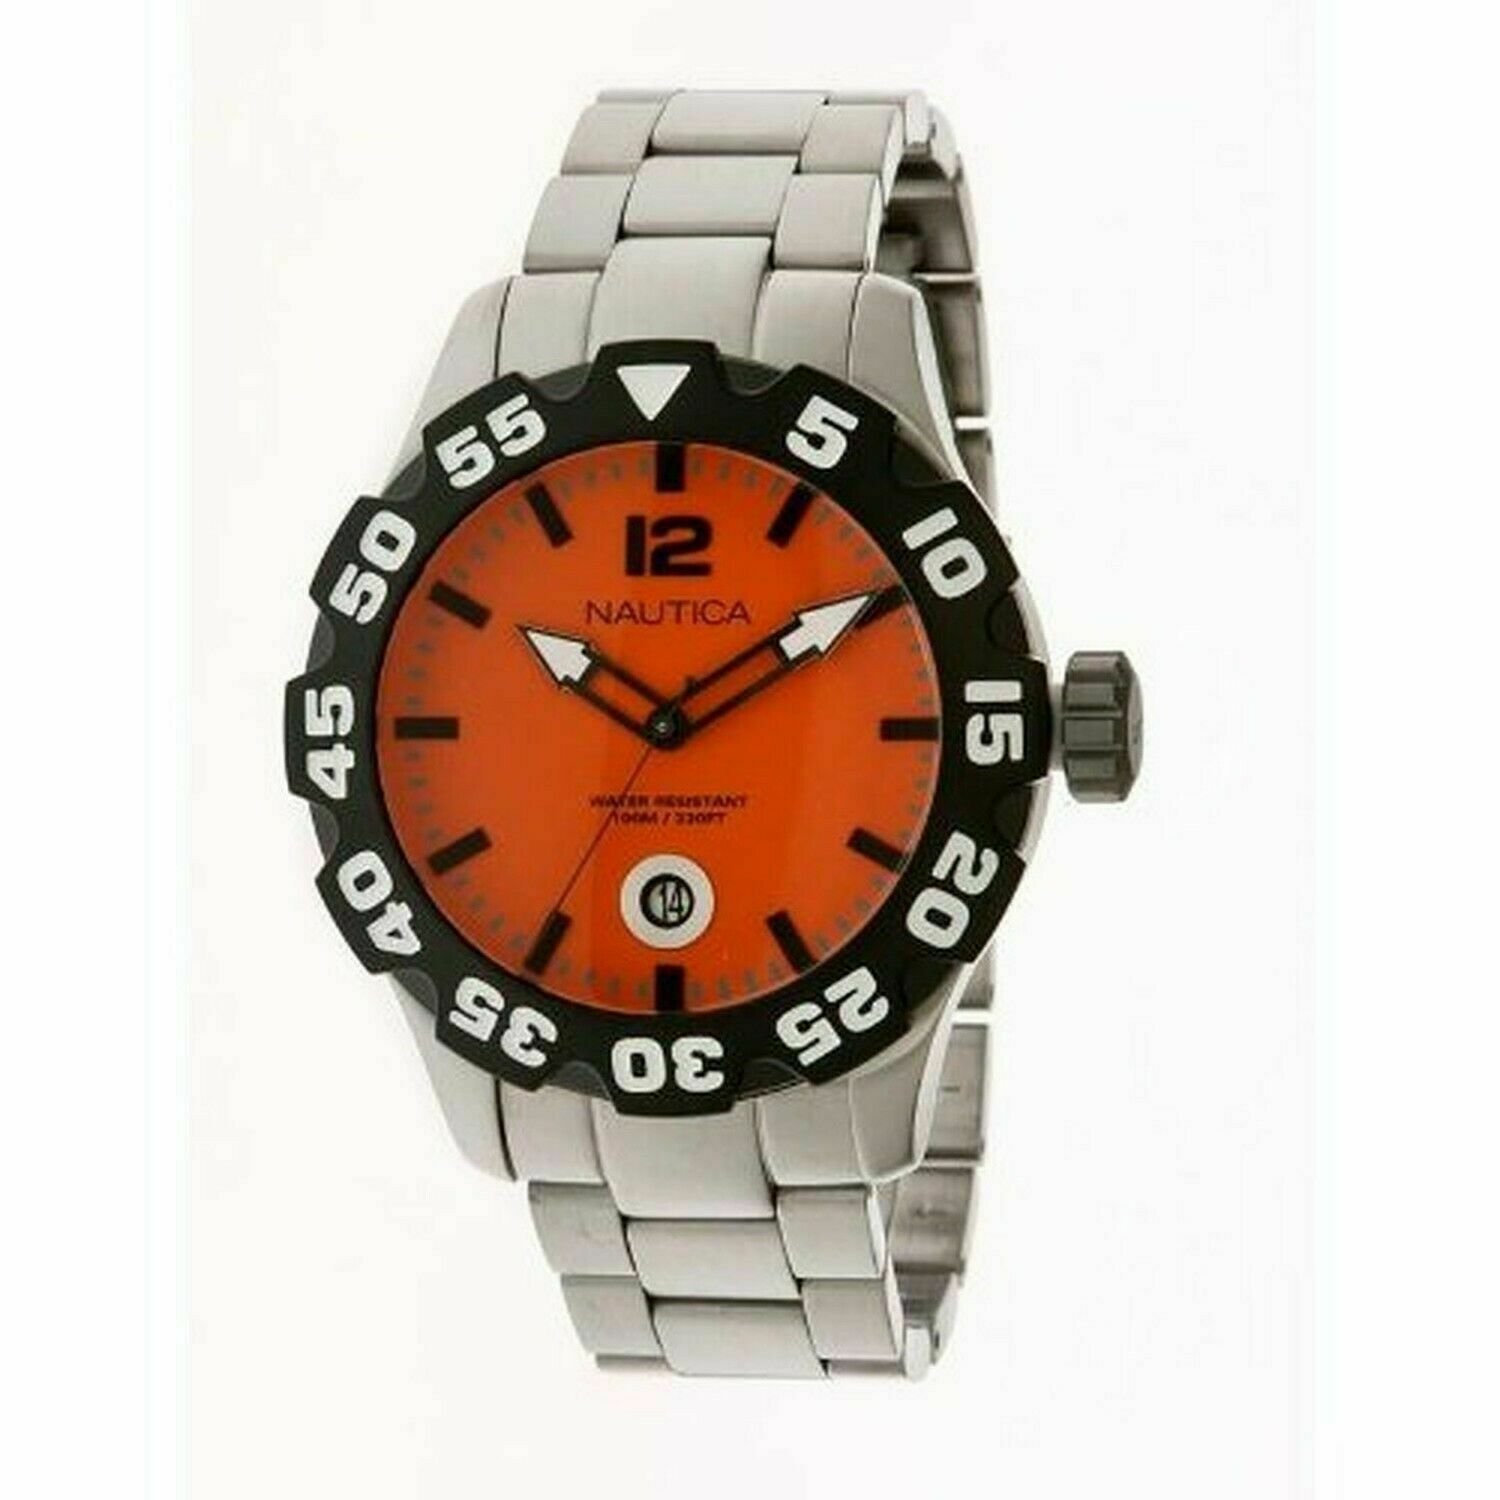 Nautica BFD 100 Stainless Steel Men's watch #N18623G SHIPSFREE